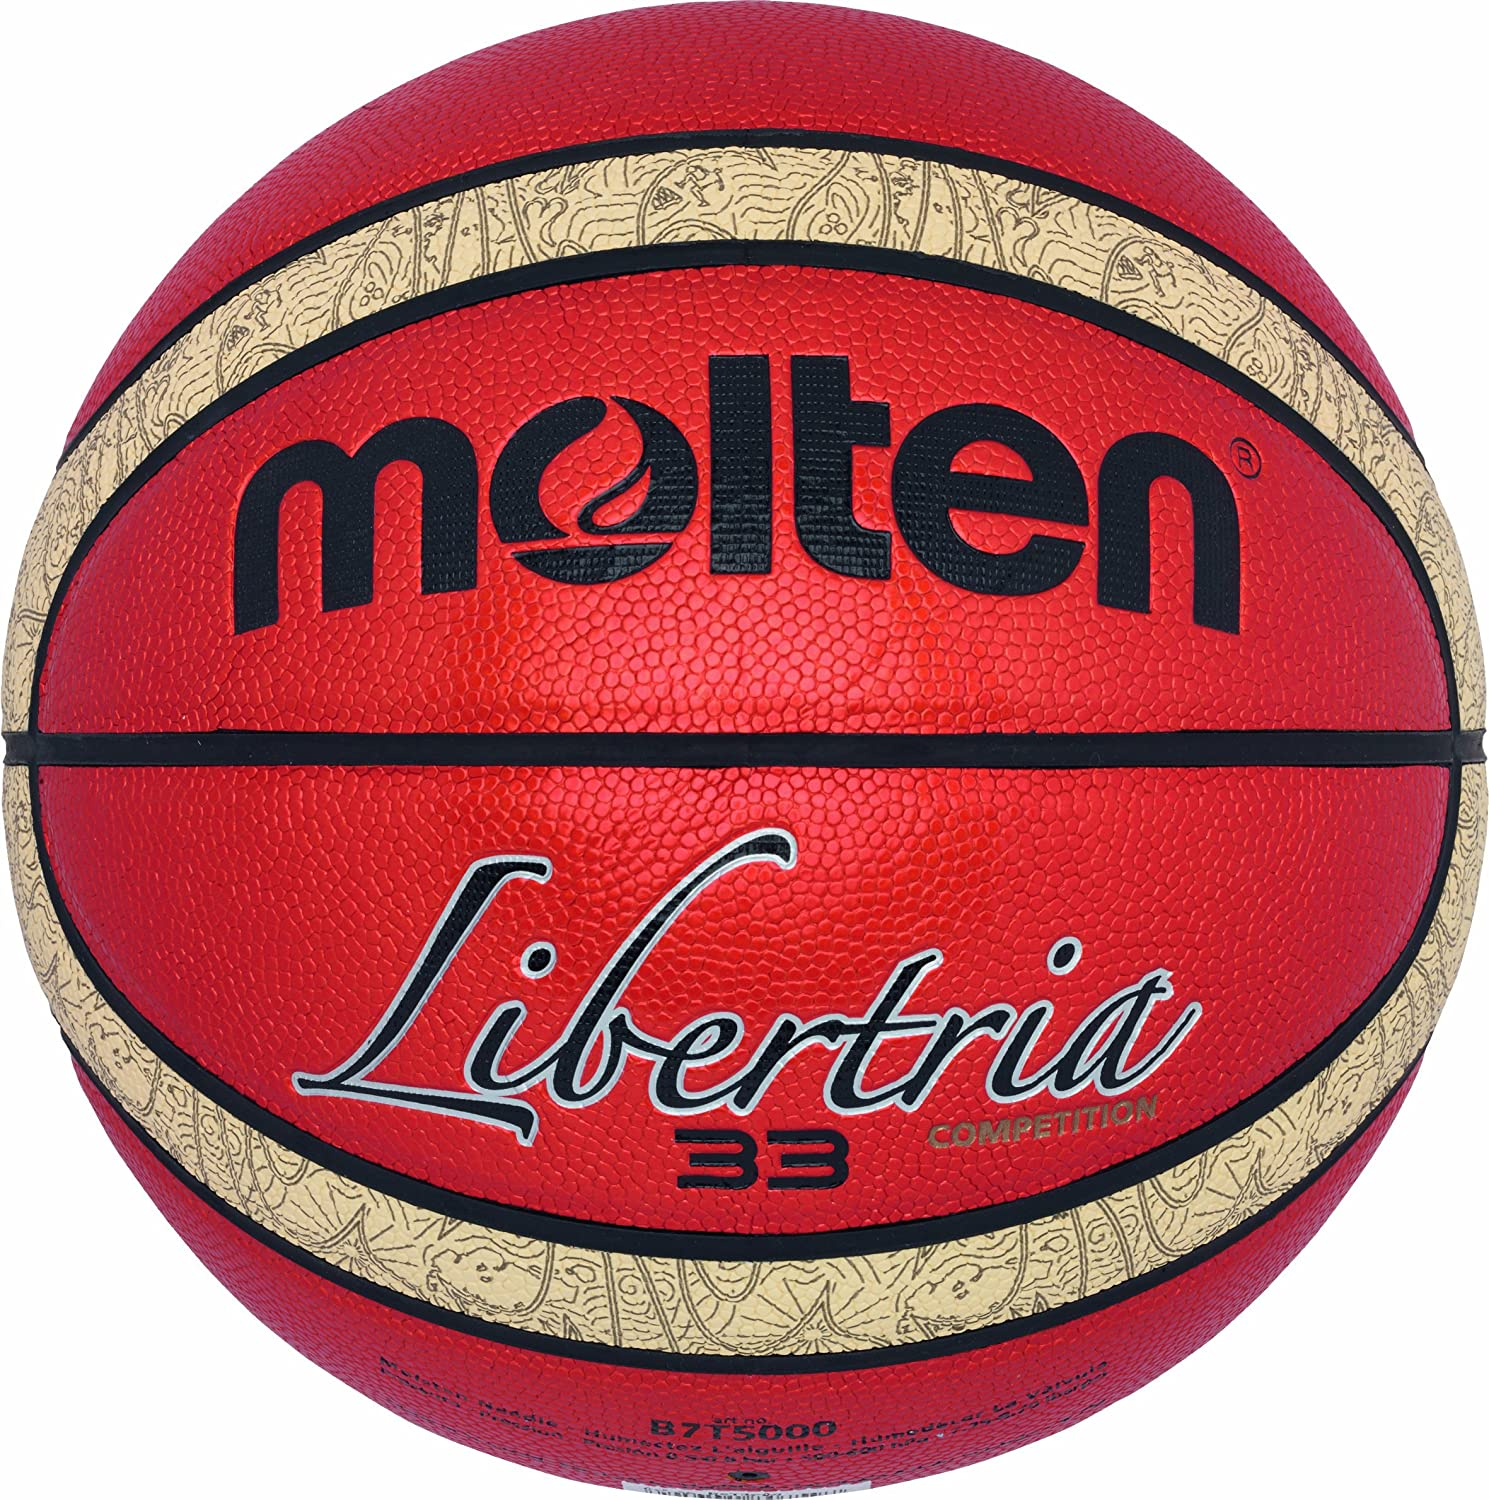 MOLTEN B7T5000 - Pelota de Baloncesto (Outdoor, Cuero), Color ...